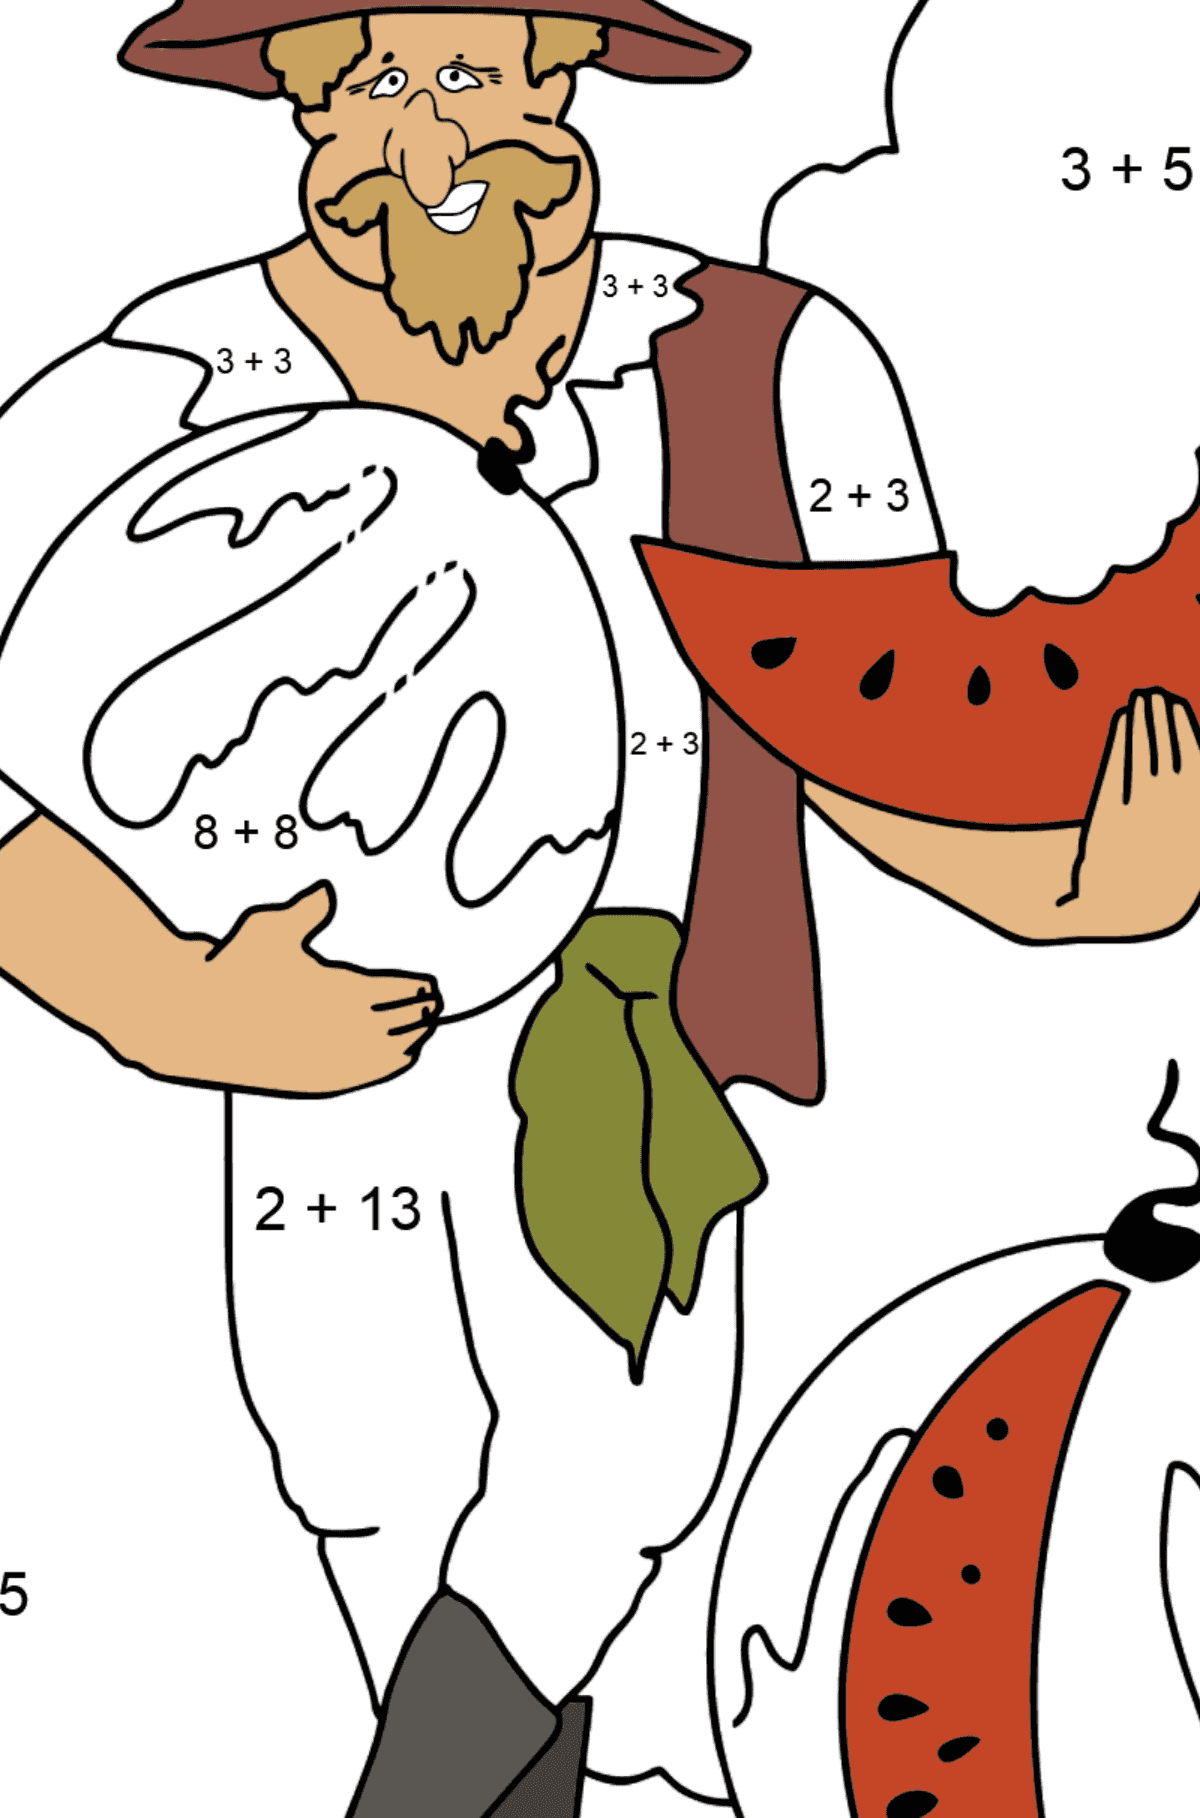 Coloring Page - A Pirate is Eating a Tasty Watermelon - Math Coloring - Addition for Kids